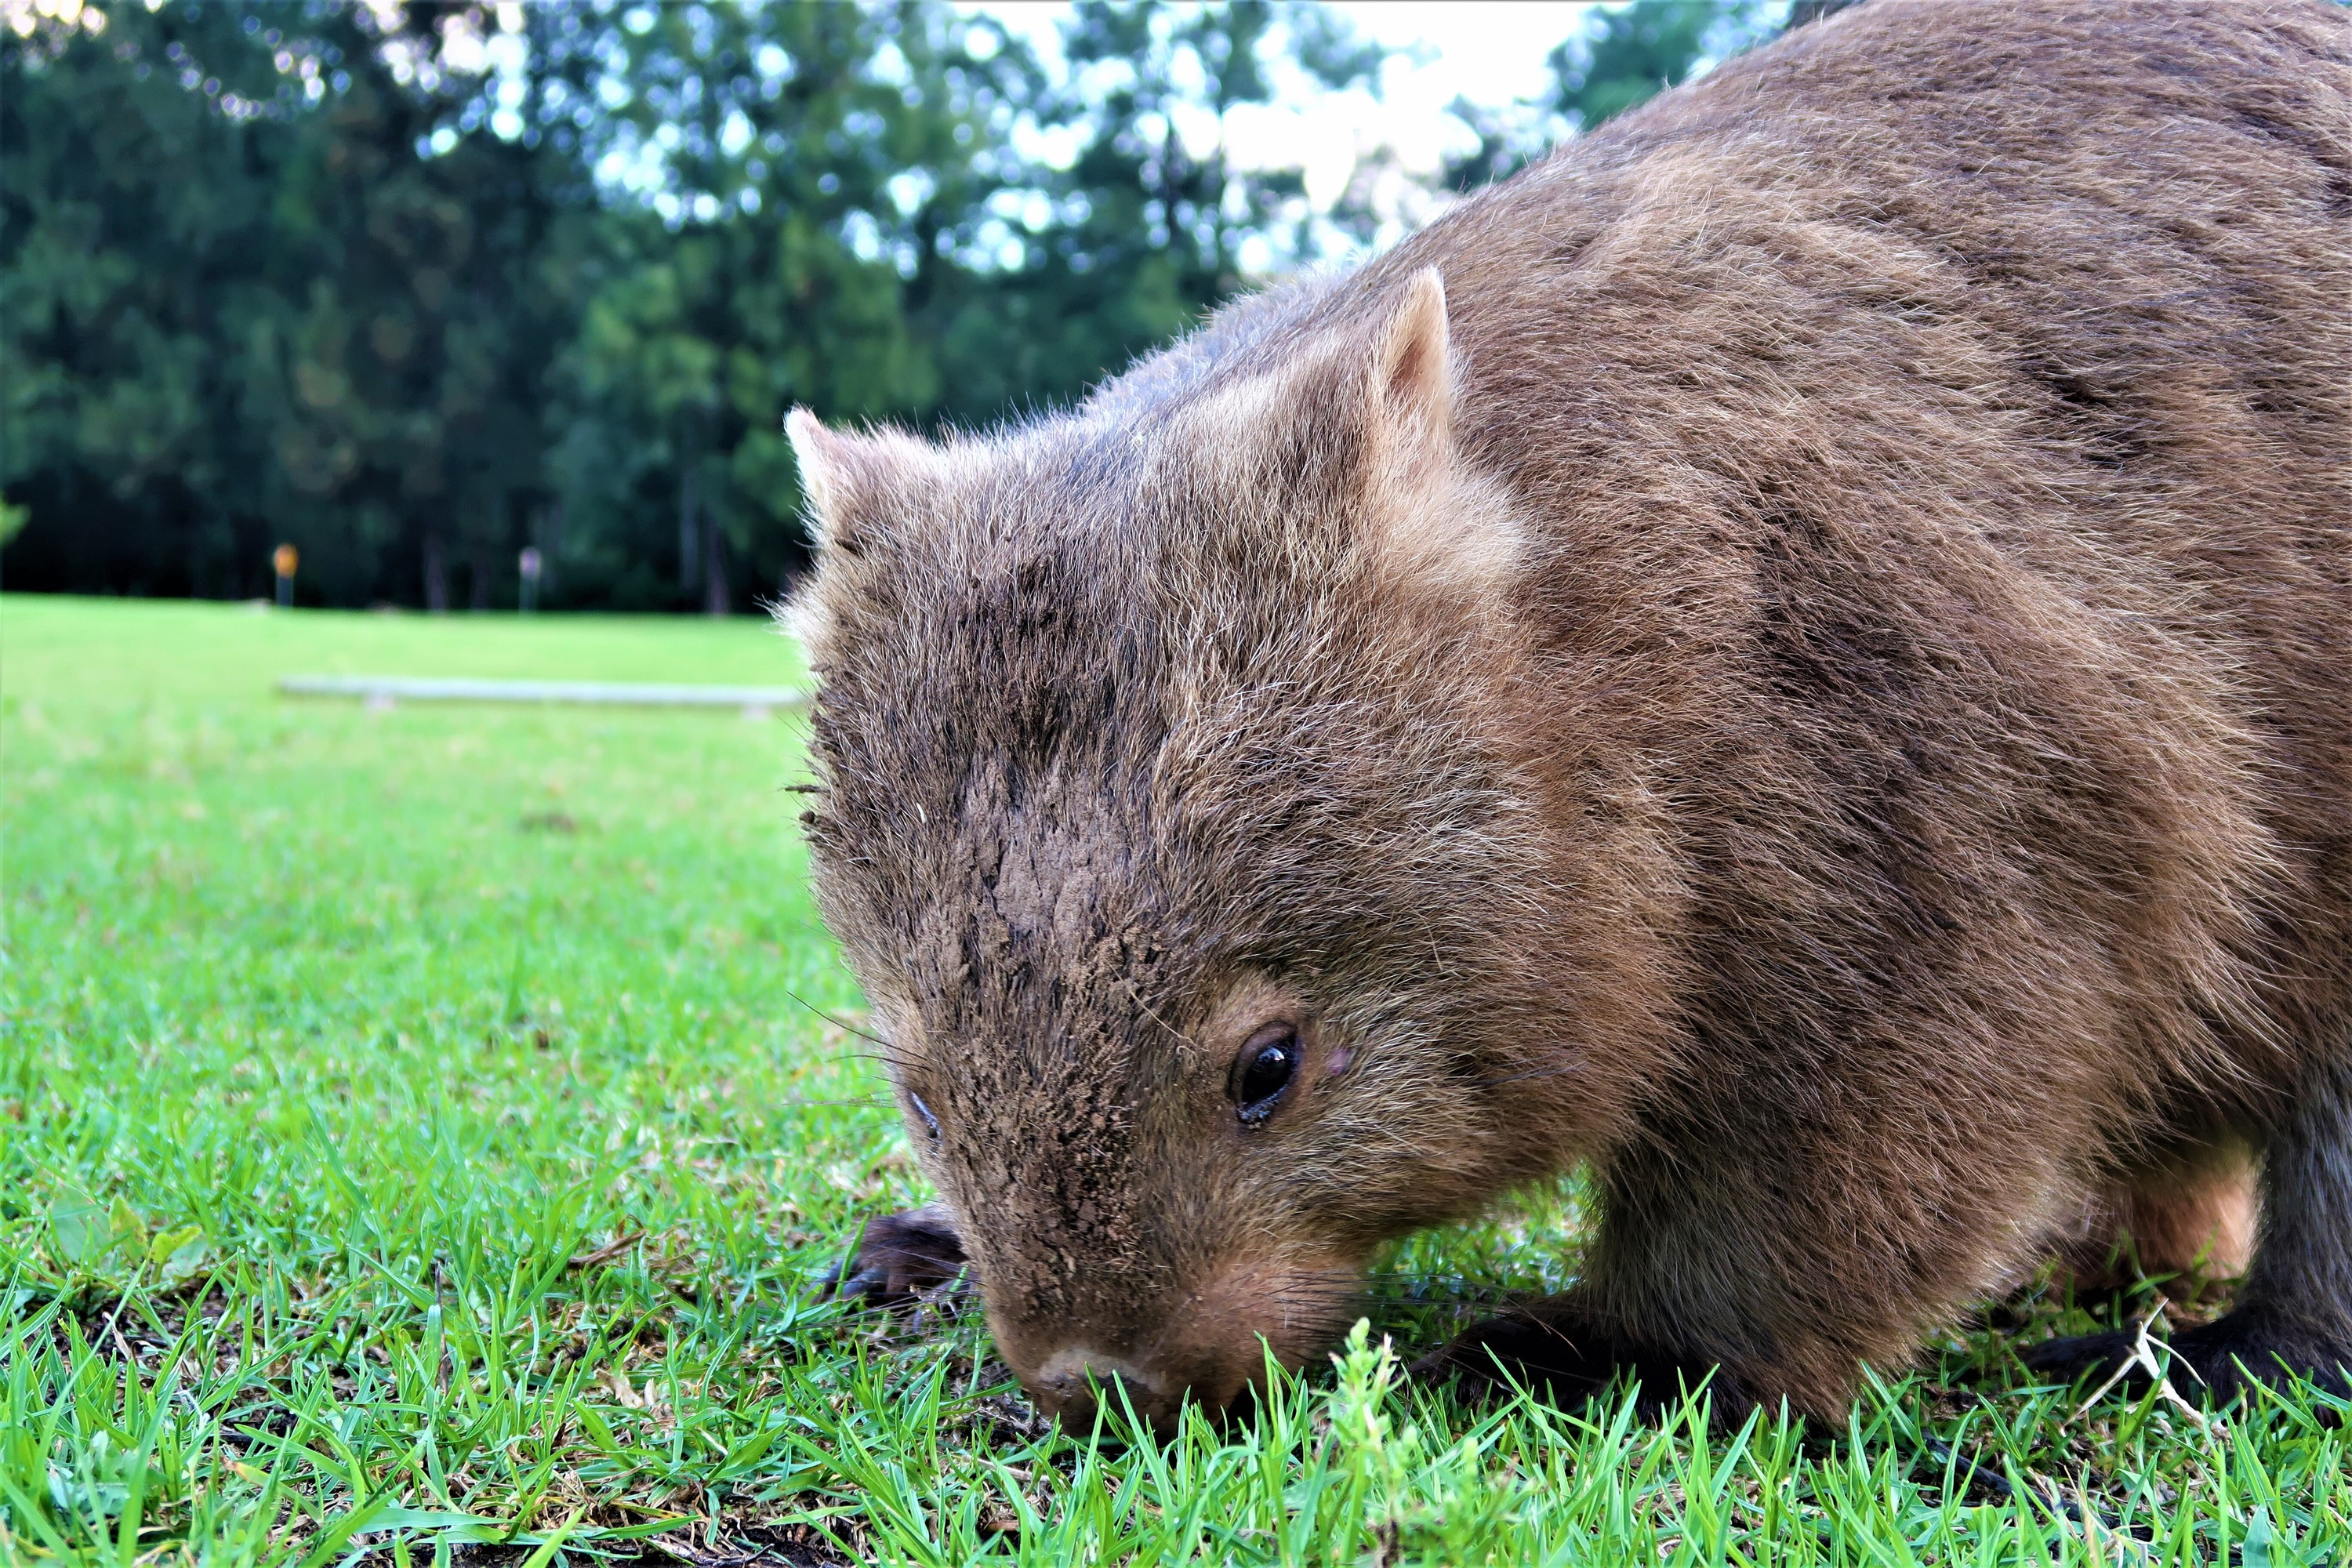 A close-up view of a wombat sniffing around in the grass